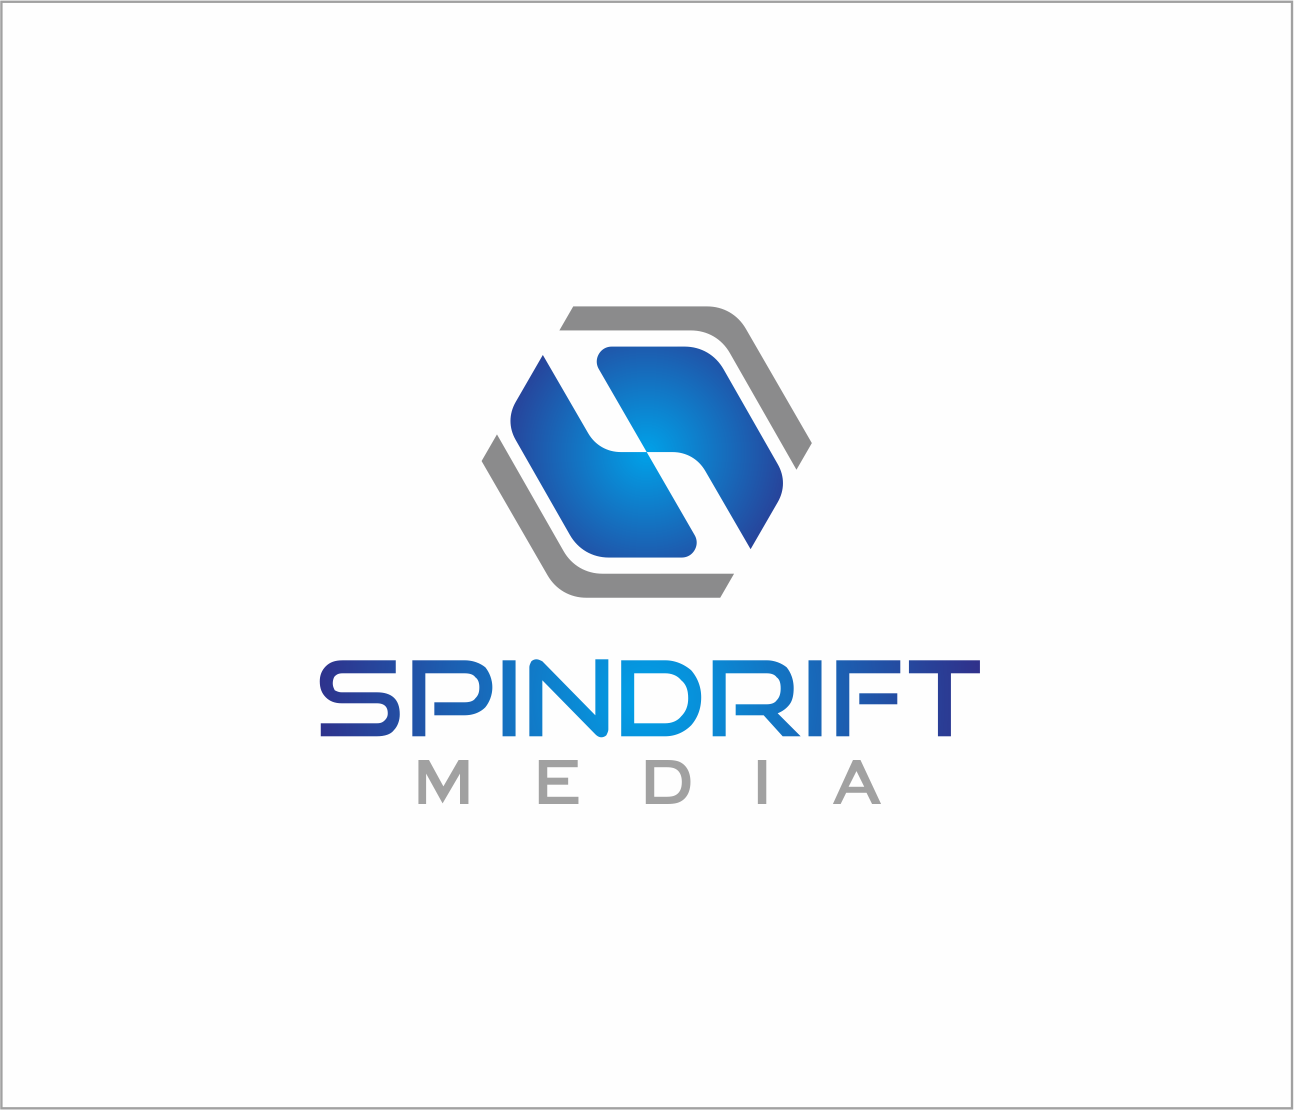 Logo Design by Armada Jamaluddin - Entry No. 53 in the Logo Design Contest Inspiring Logo Design for Spindrift Media.